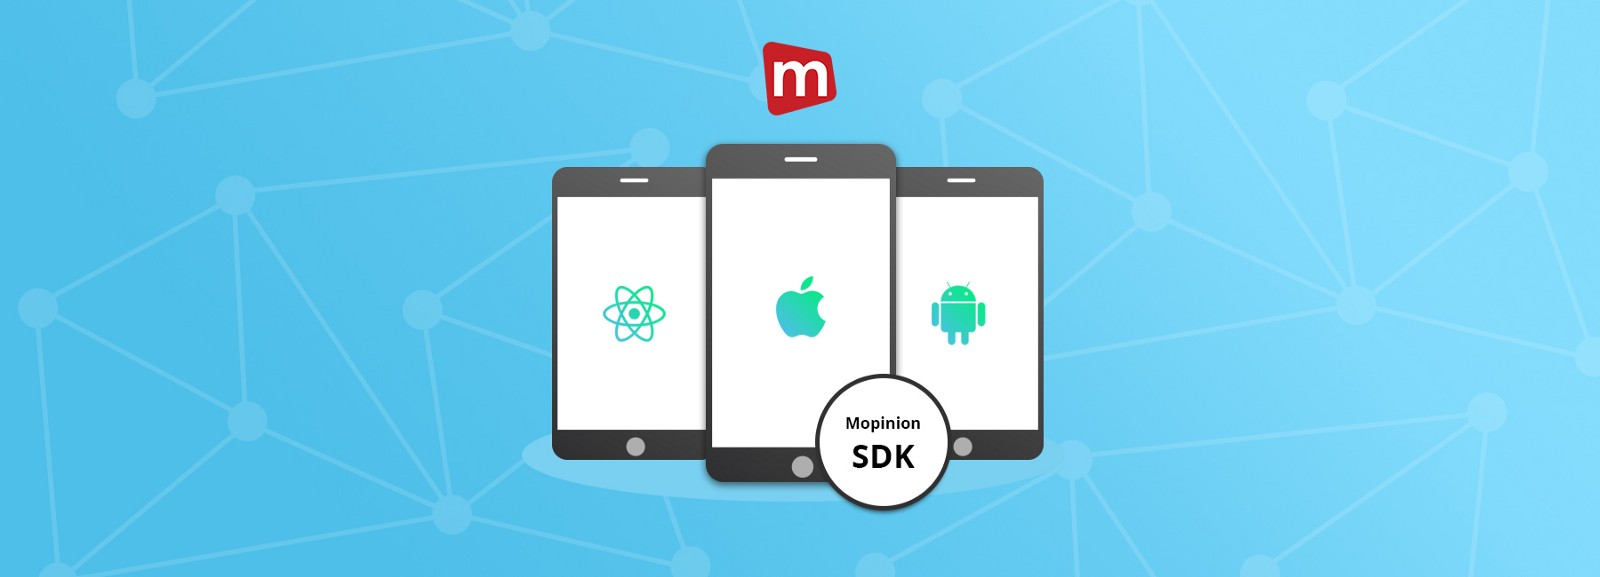 Mopinion releases new mobile SDK to collect in-app feedback